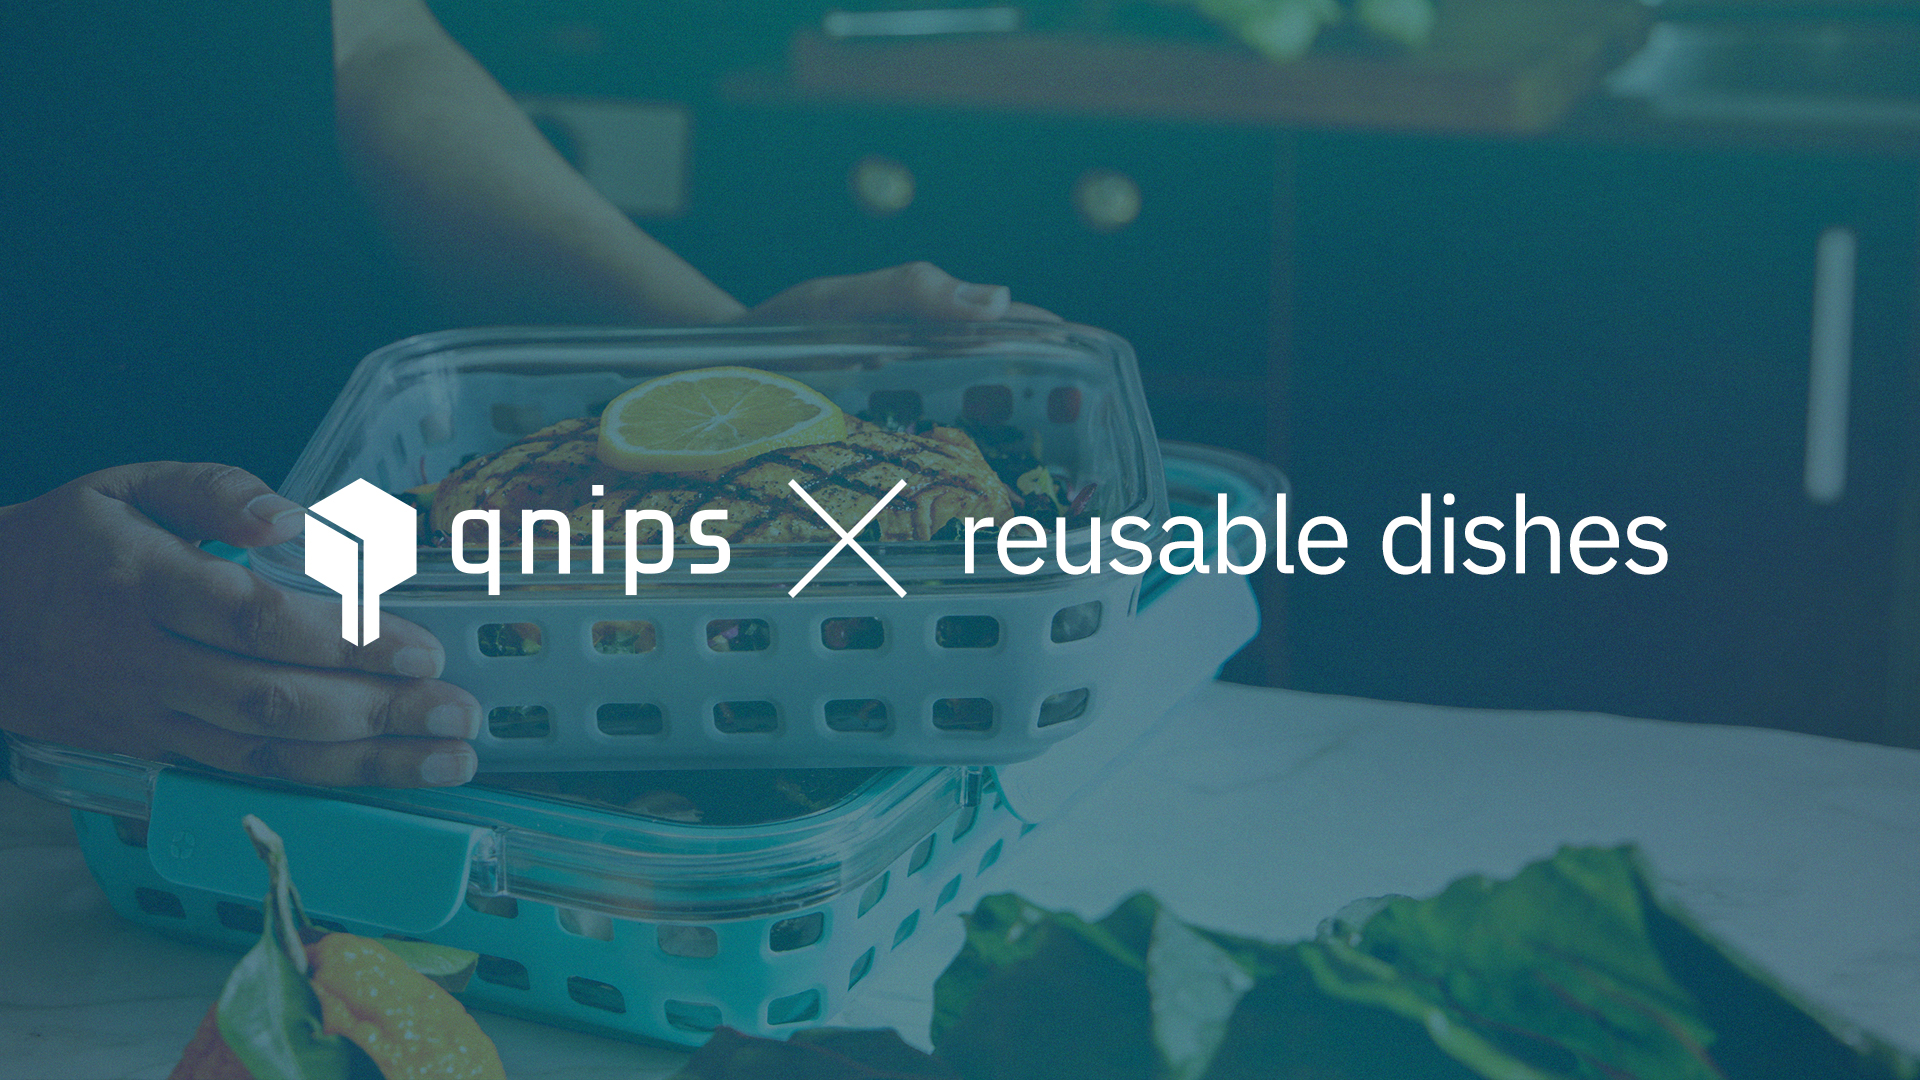 qnips offers an integration for reusable dishes